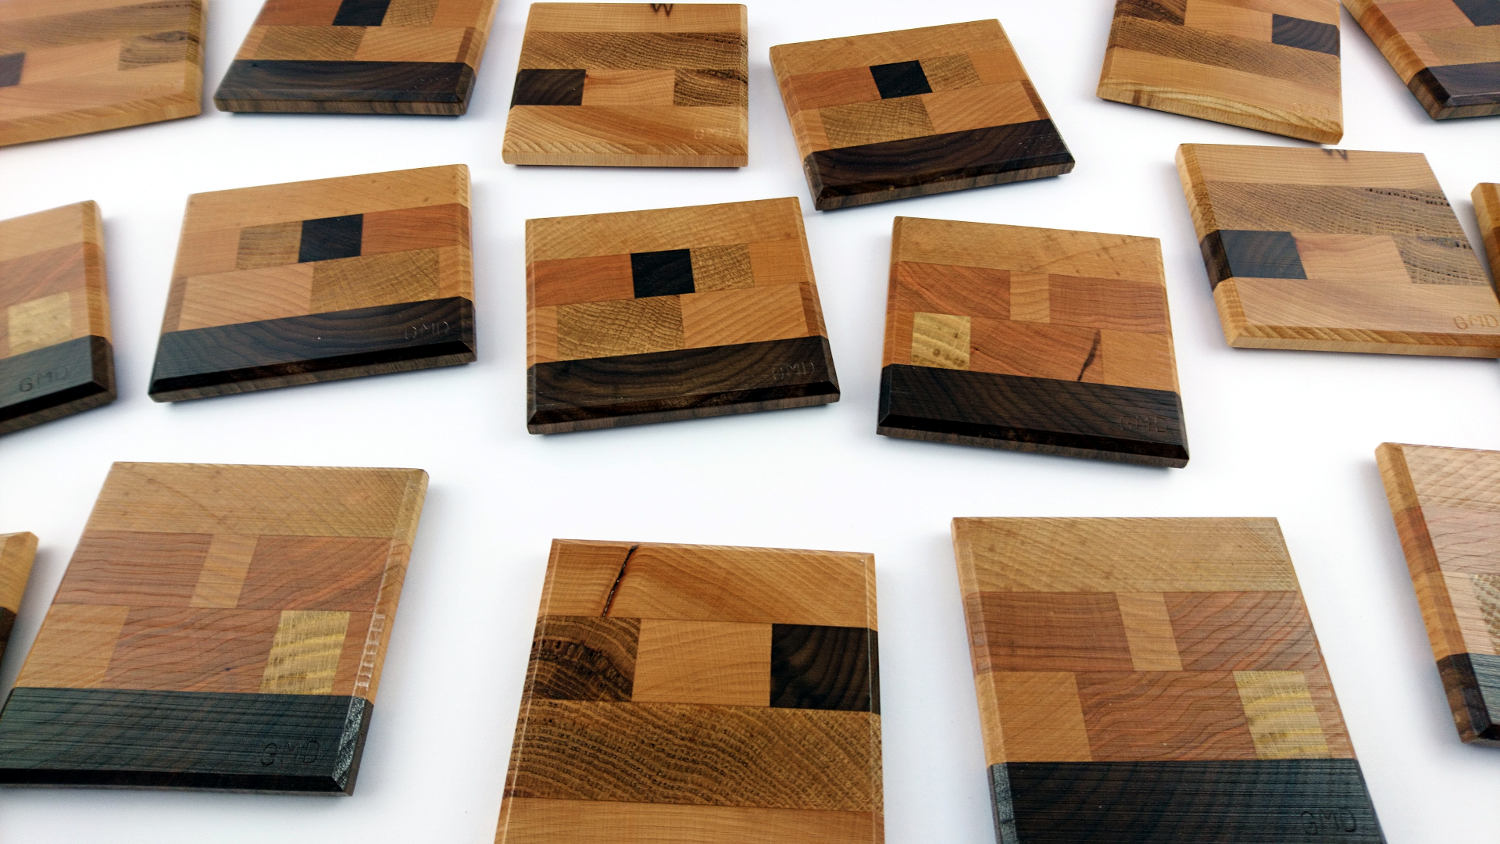 Messy Group of End Grain Coasters